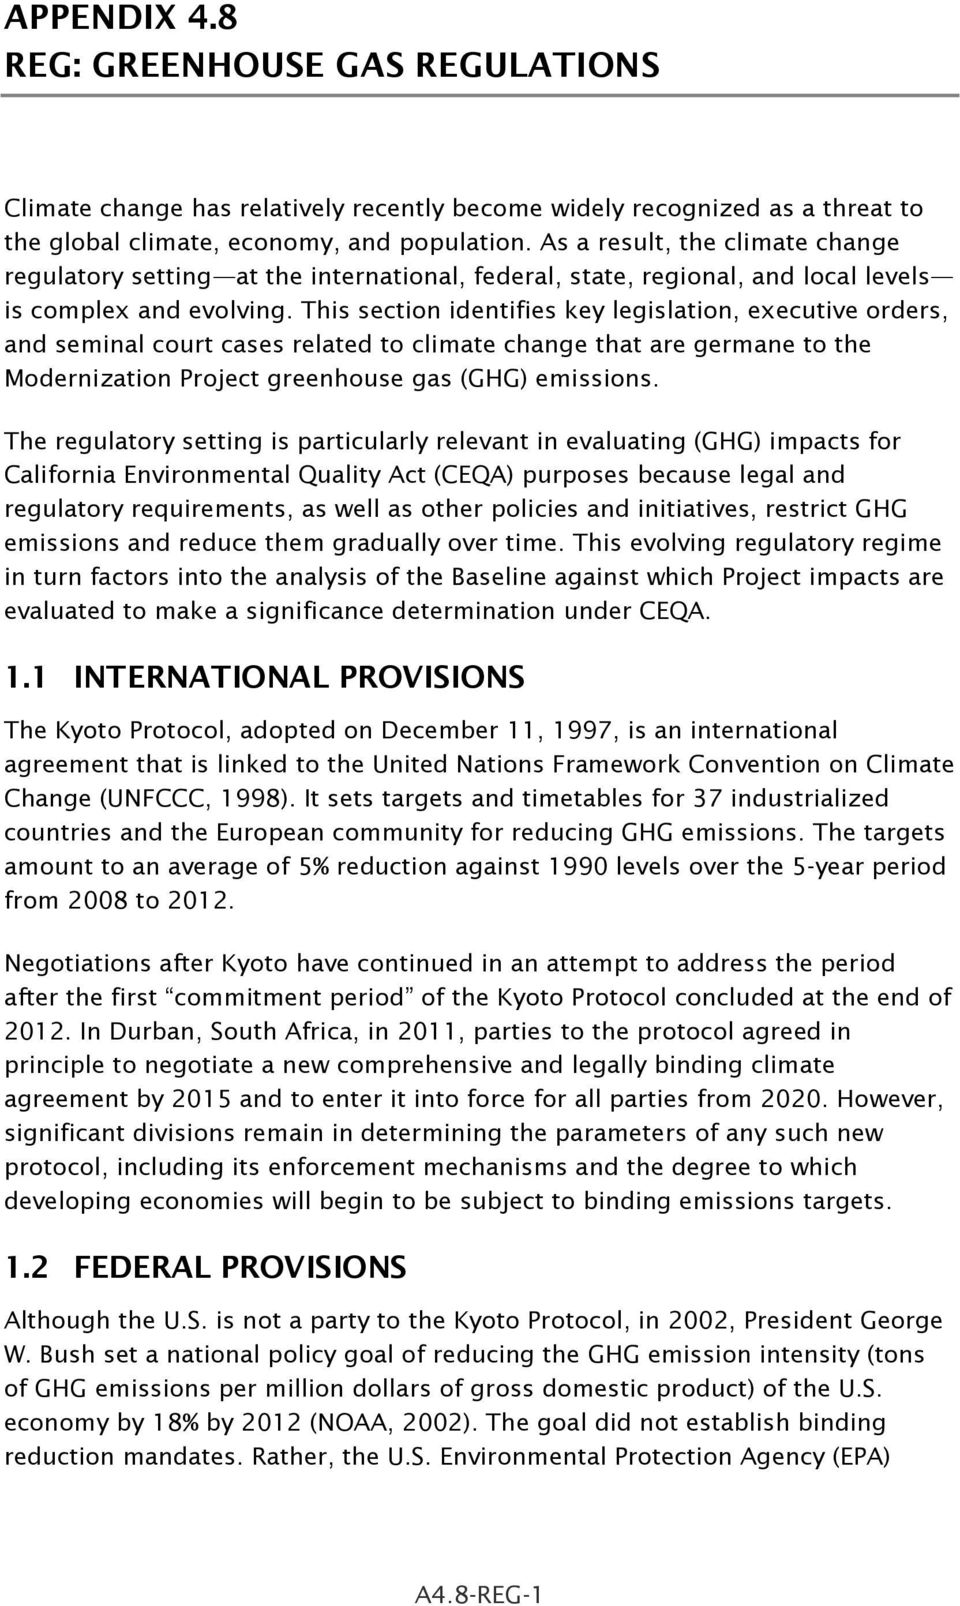 This section identifies key legislation, executive orders, and seminal court cases related to climate change that are germane to the Modernization Project greenhouse gas (GHG) emissions.